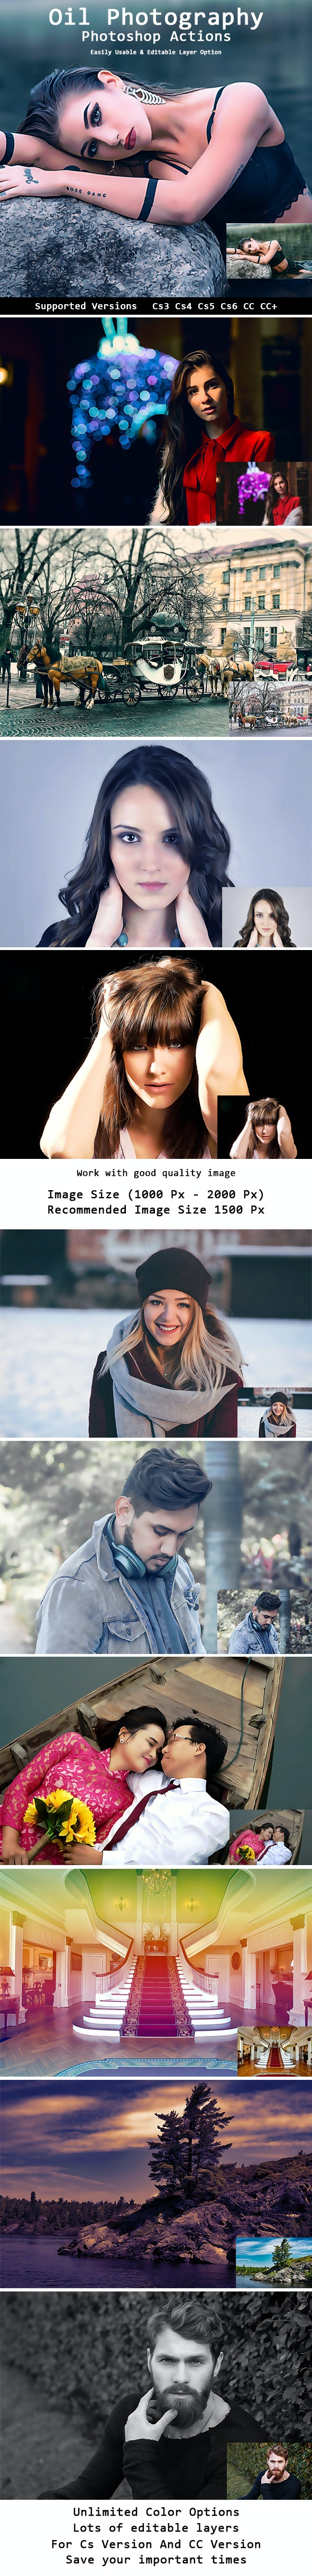 Oil Photography Actions - Photo Effects Actions